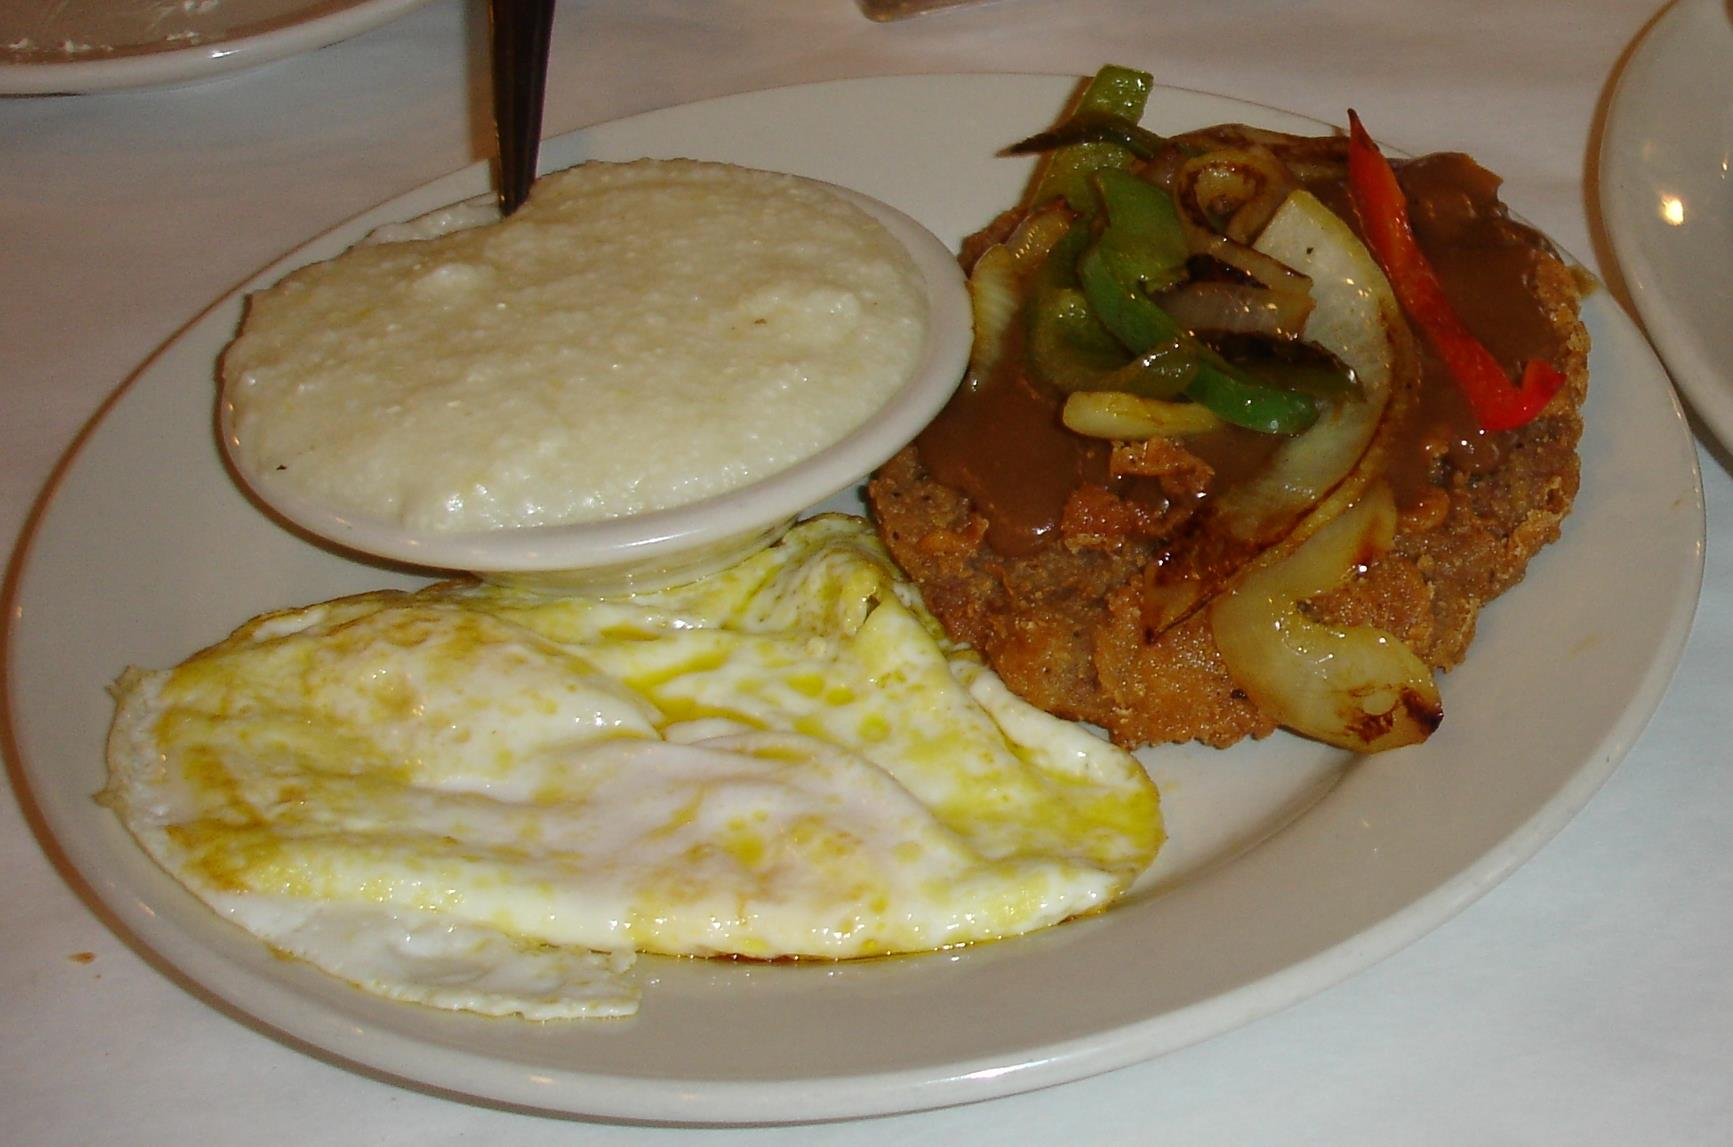 A Down South Breakfast includes country-fried steak, two eggs, grits, and (not-visible) two pancakes with syrup and butter.